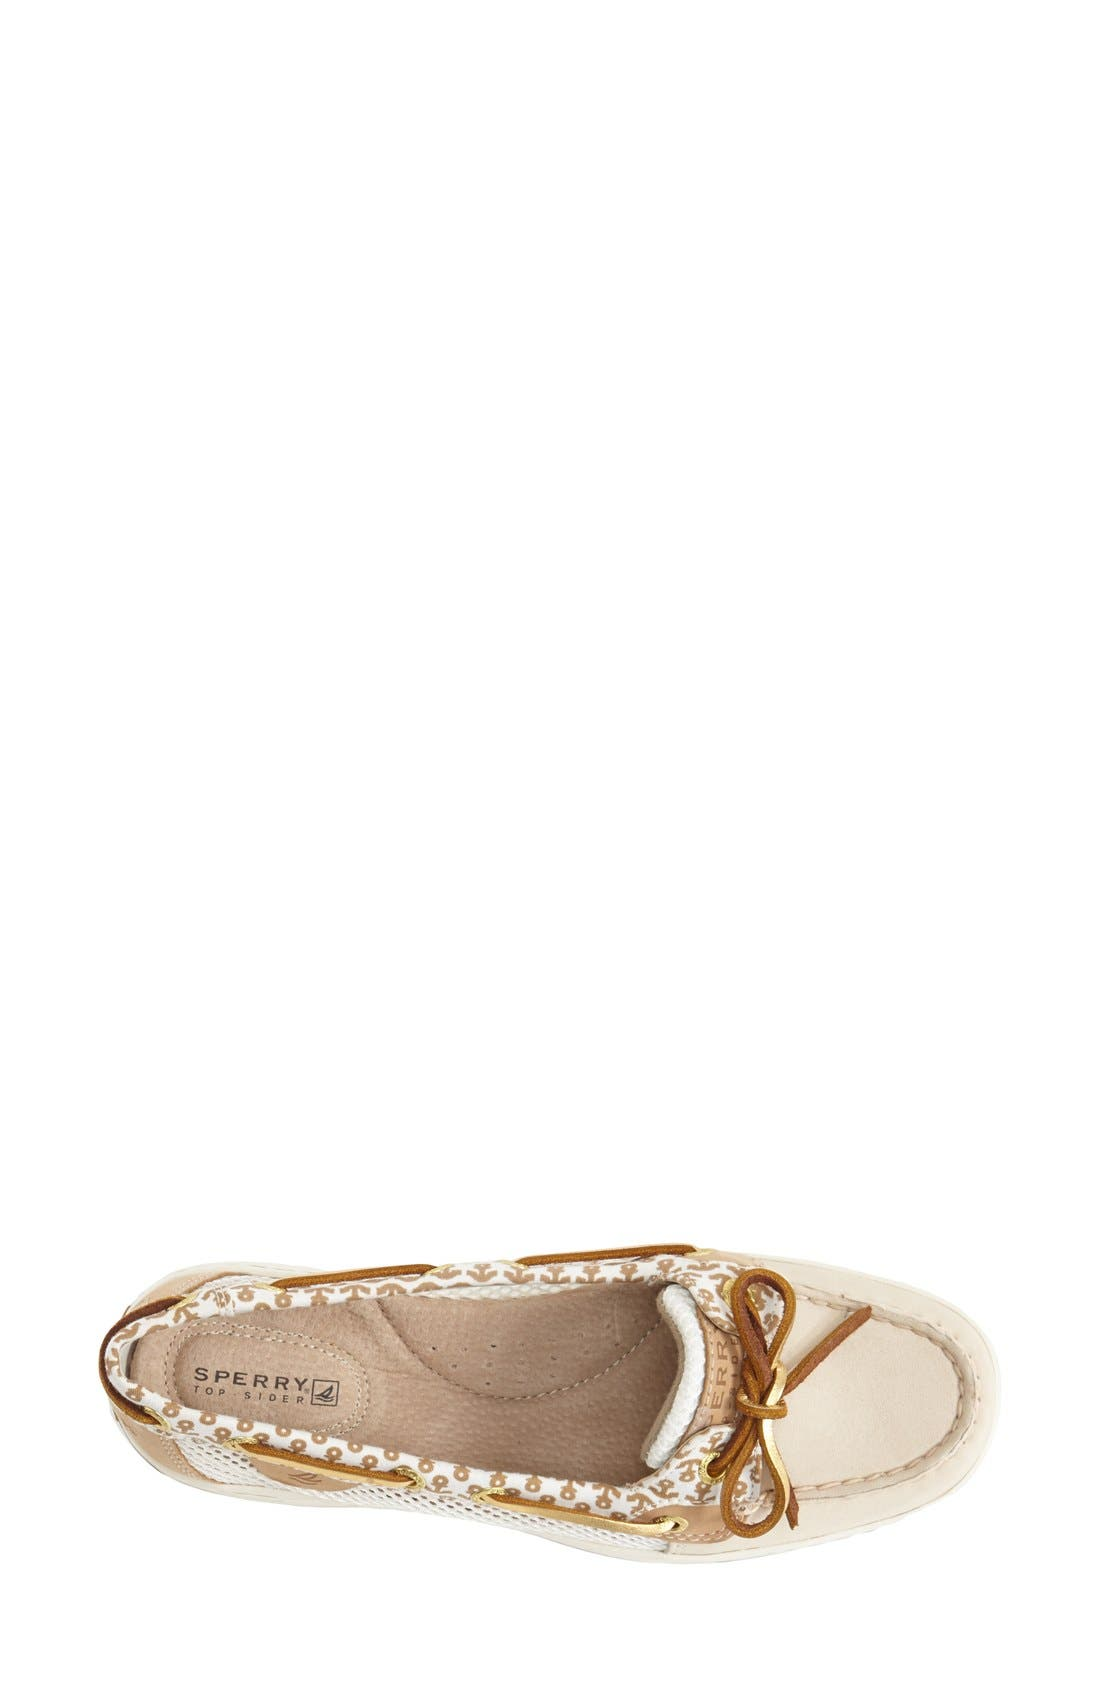 Alternate Image 3  - Sperry 'Angelfish - Critter' Boat Shoe (Women)